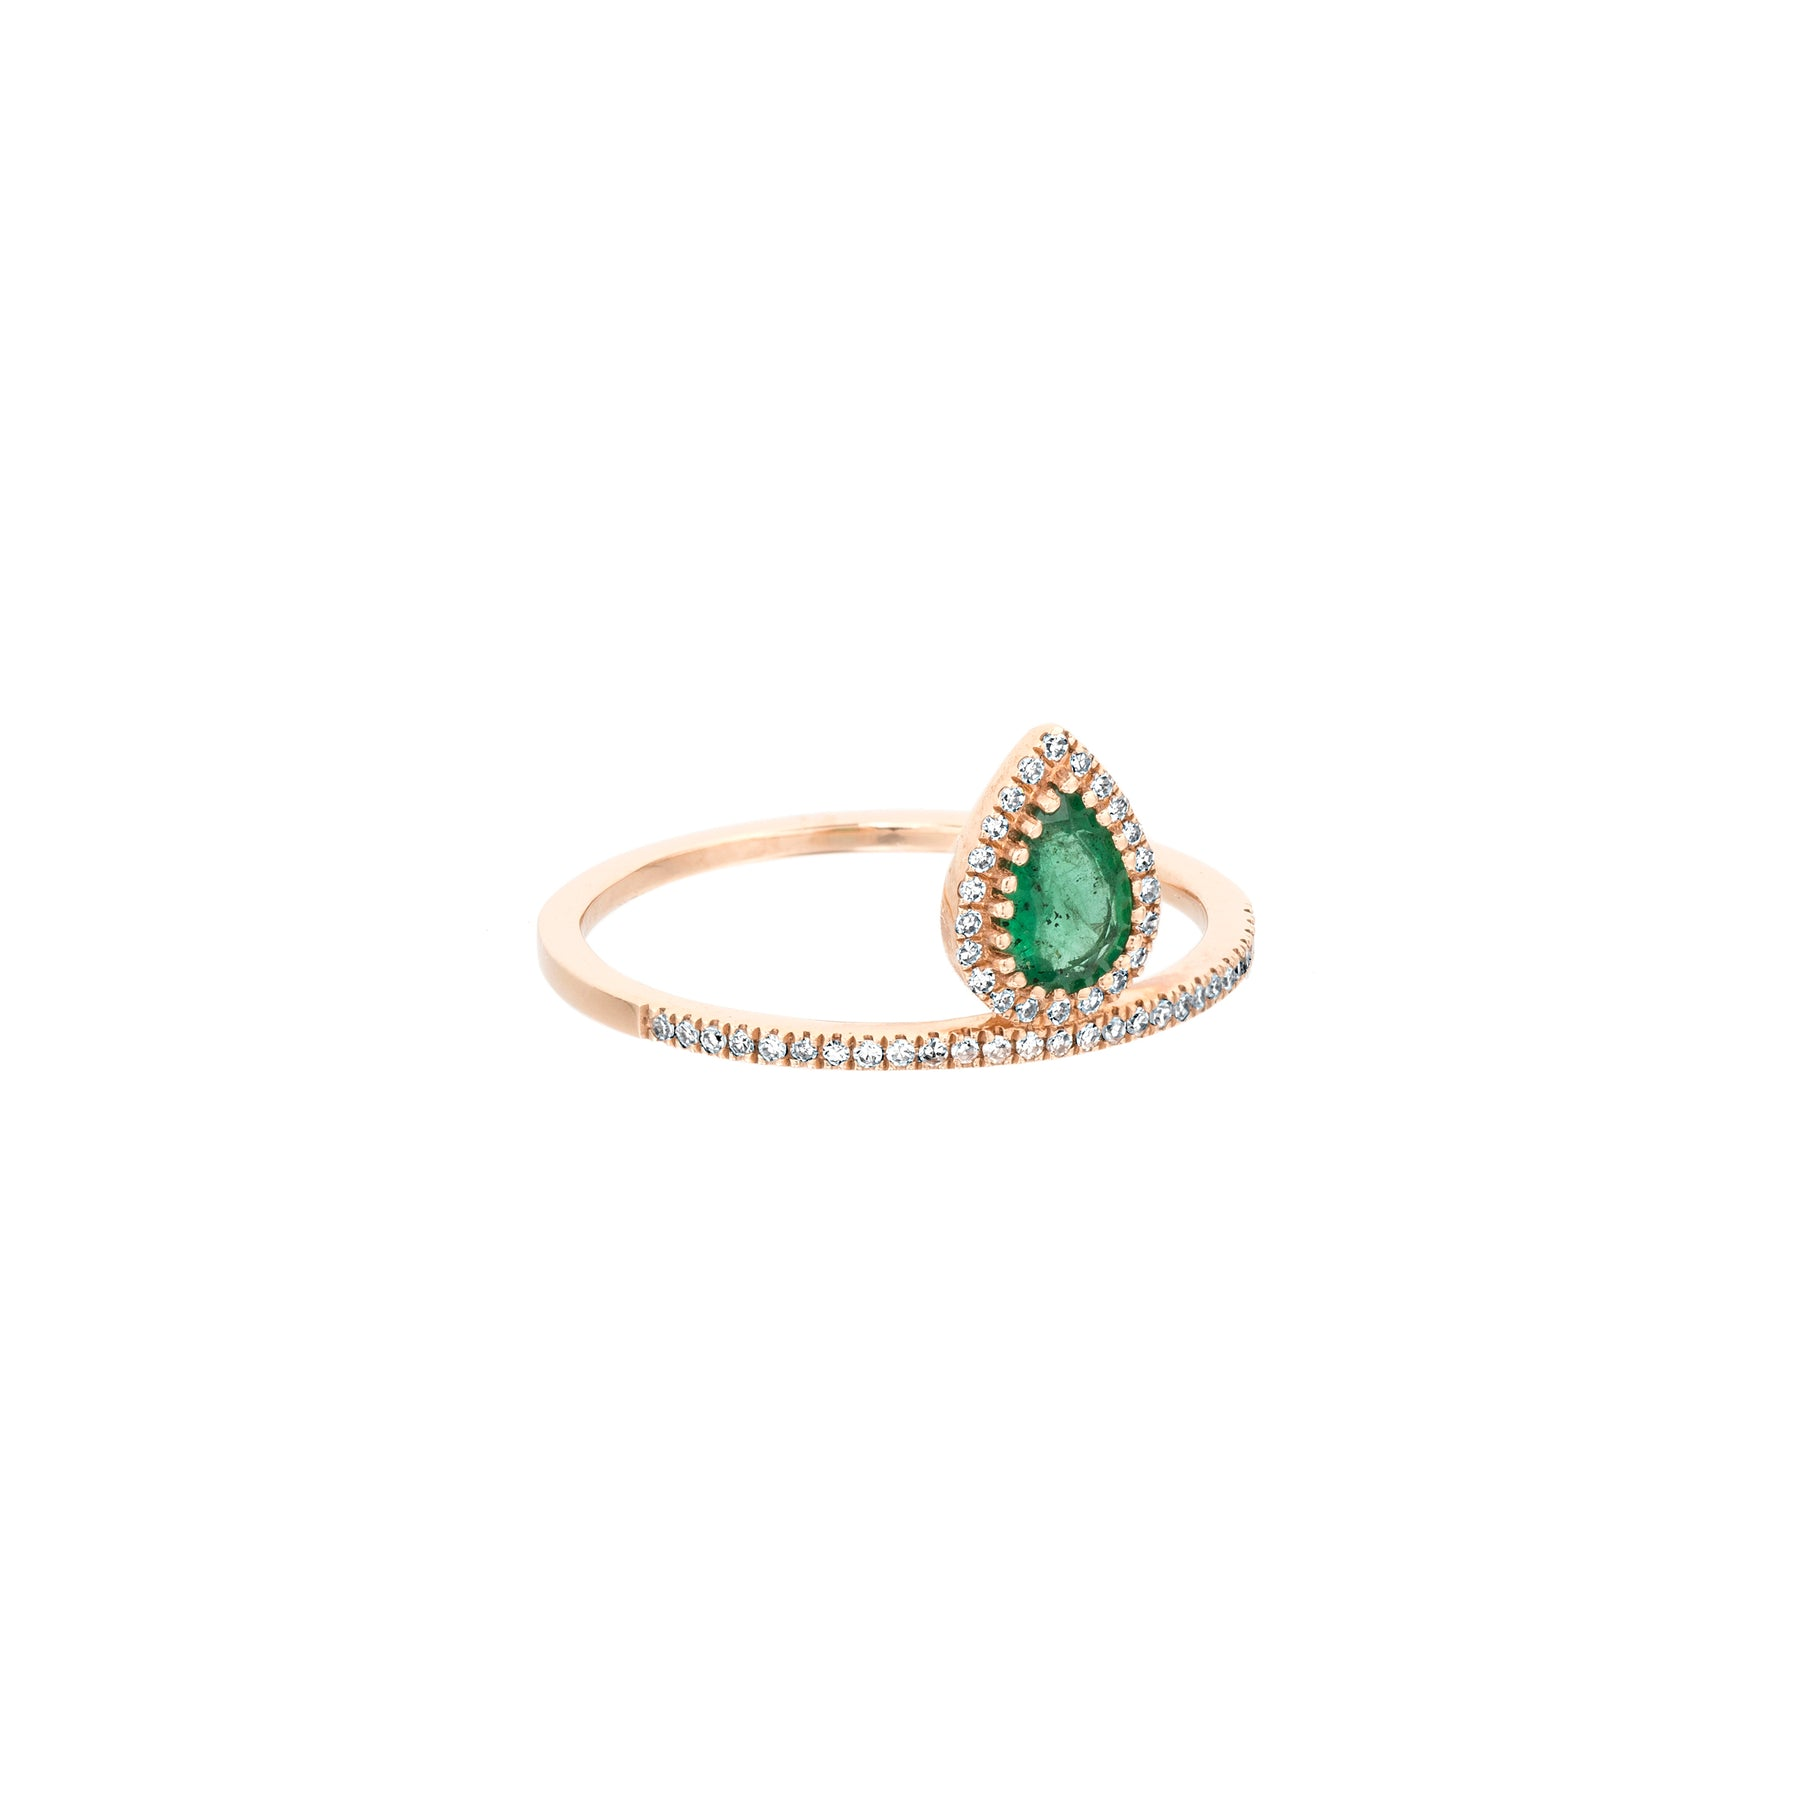 Emerald Tear Drop Diamond Ring